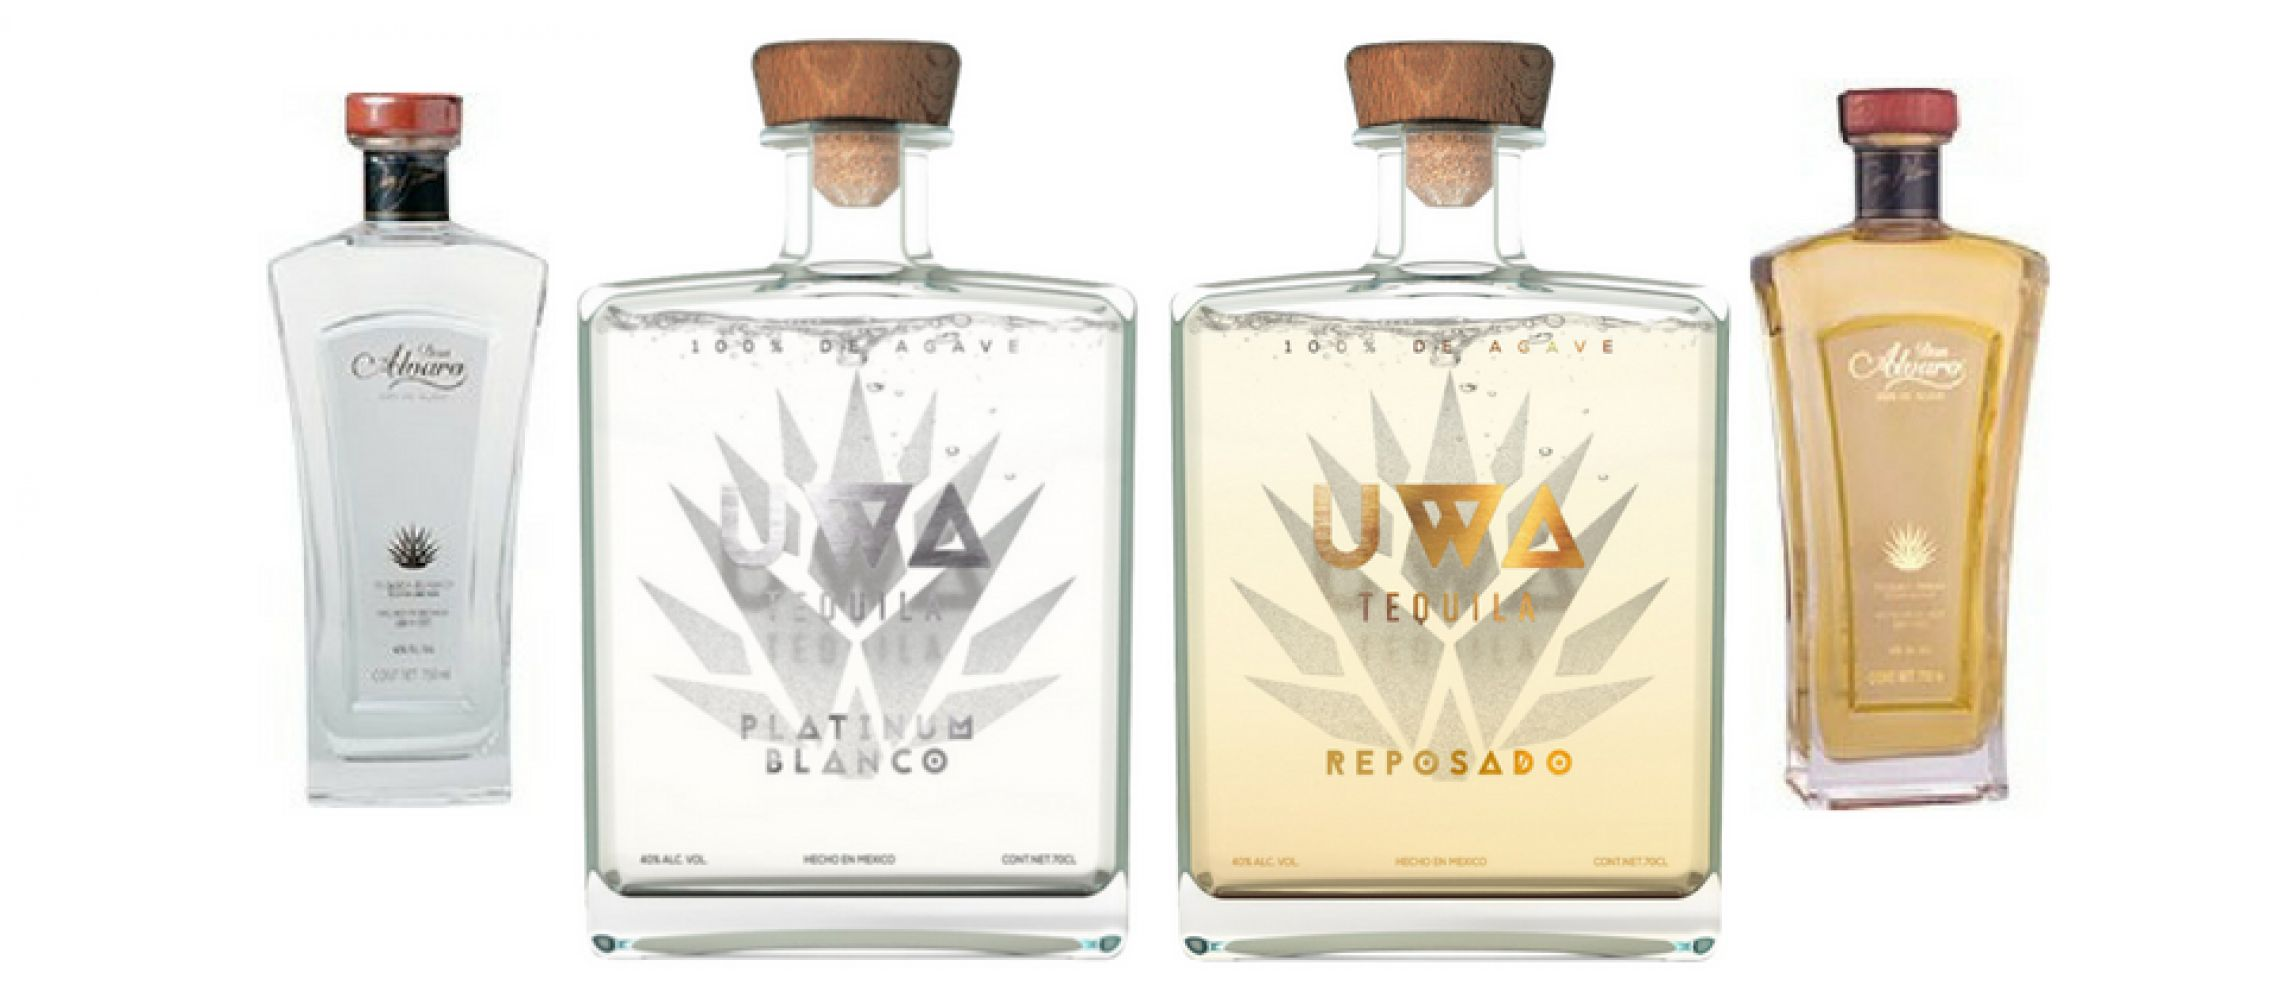 Photo for: Best Tequilas to Try on National Tequila Day